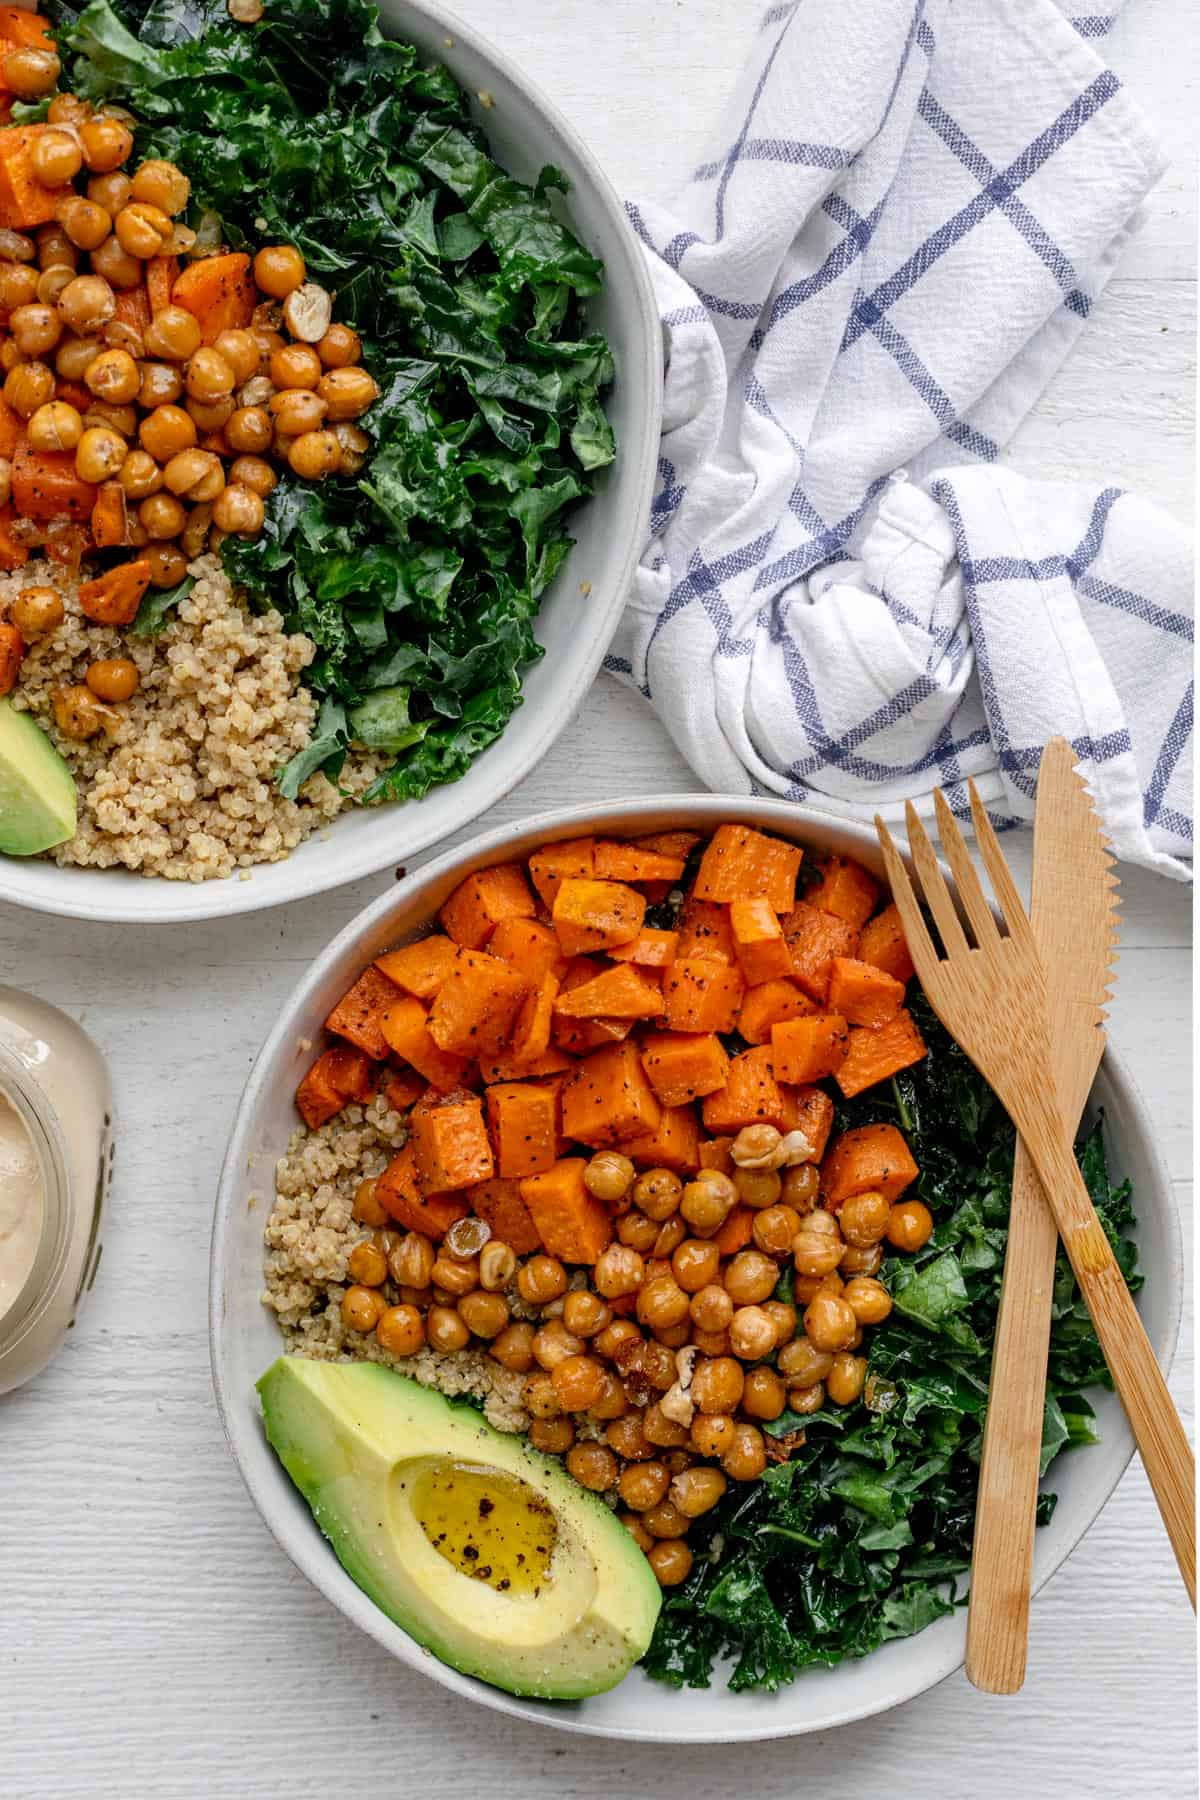 Two vegan buddah bowls made with quinoa, sweet potatoes and kale